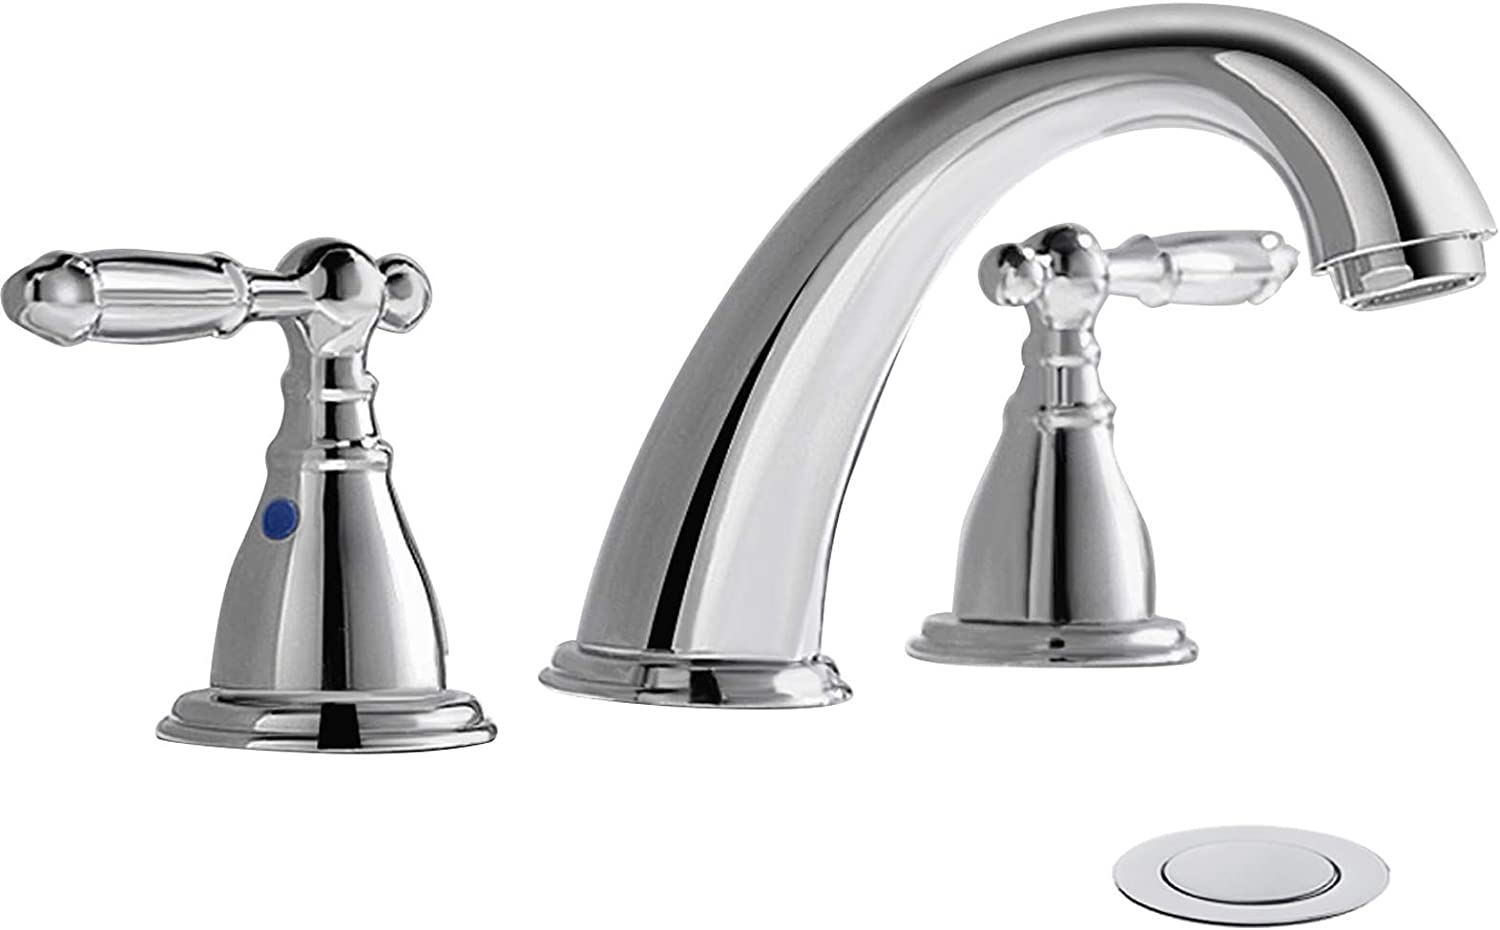 8 Inch 3 Hole Widespread Bathroom Faucet With Metal Pop Up Drain By Phiestina Chrome Widespread Bathroom Sink Lavatory Faucet Wf008 4 C Amazon Com